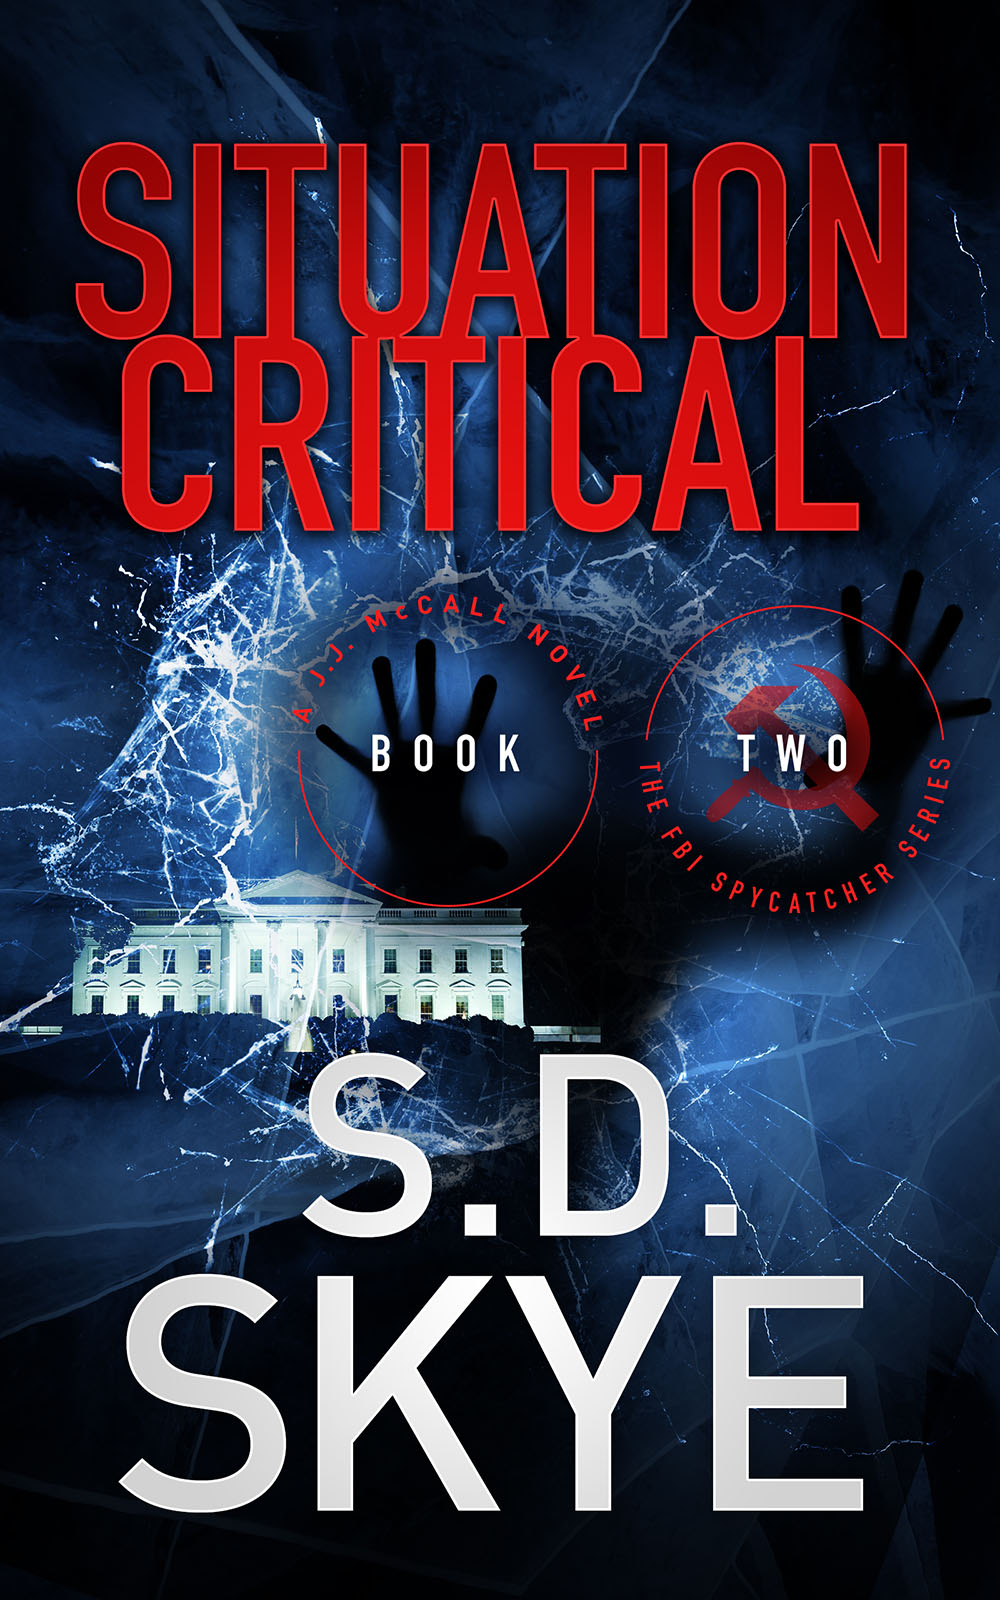 SITUATION CRITICAL (A J.J. MCCALL NOVEL #2)